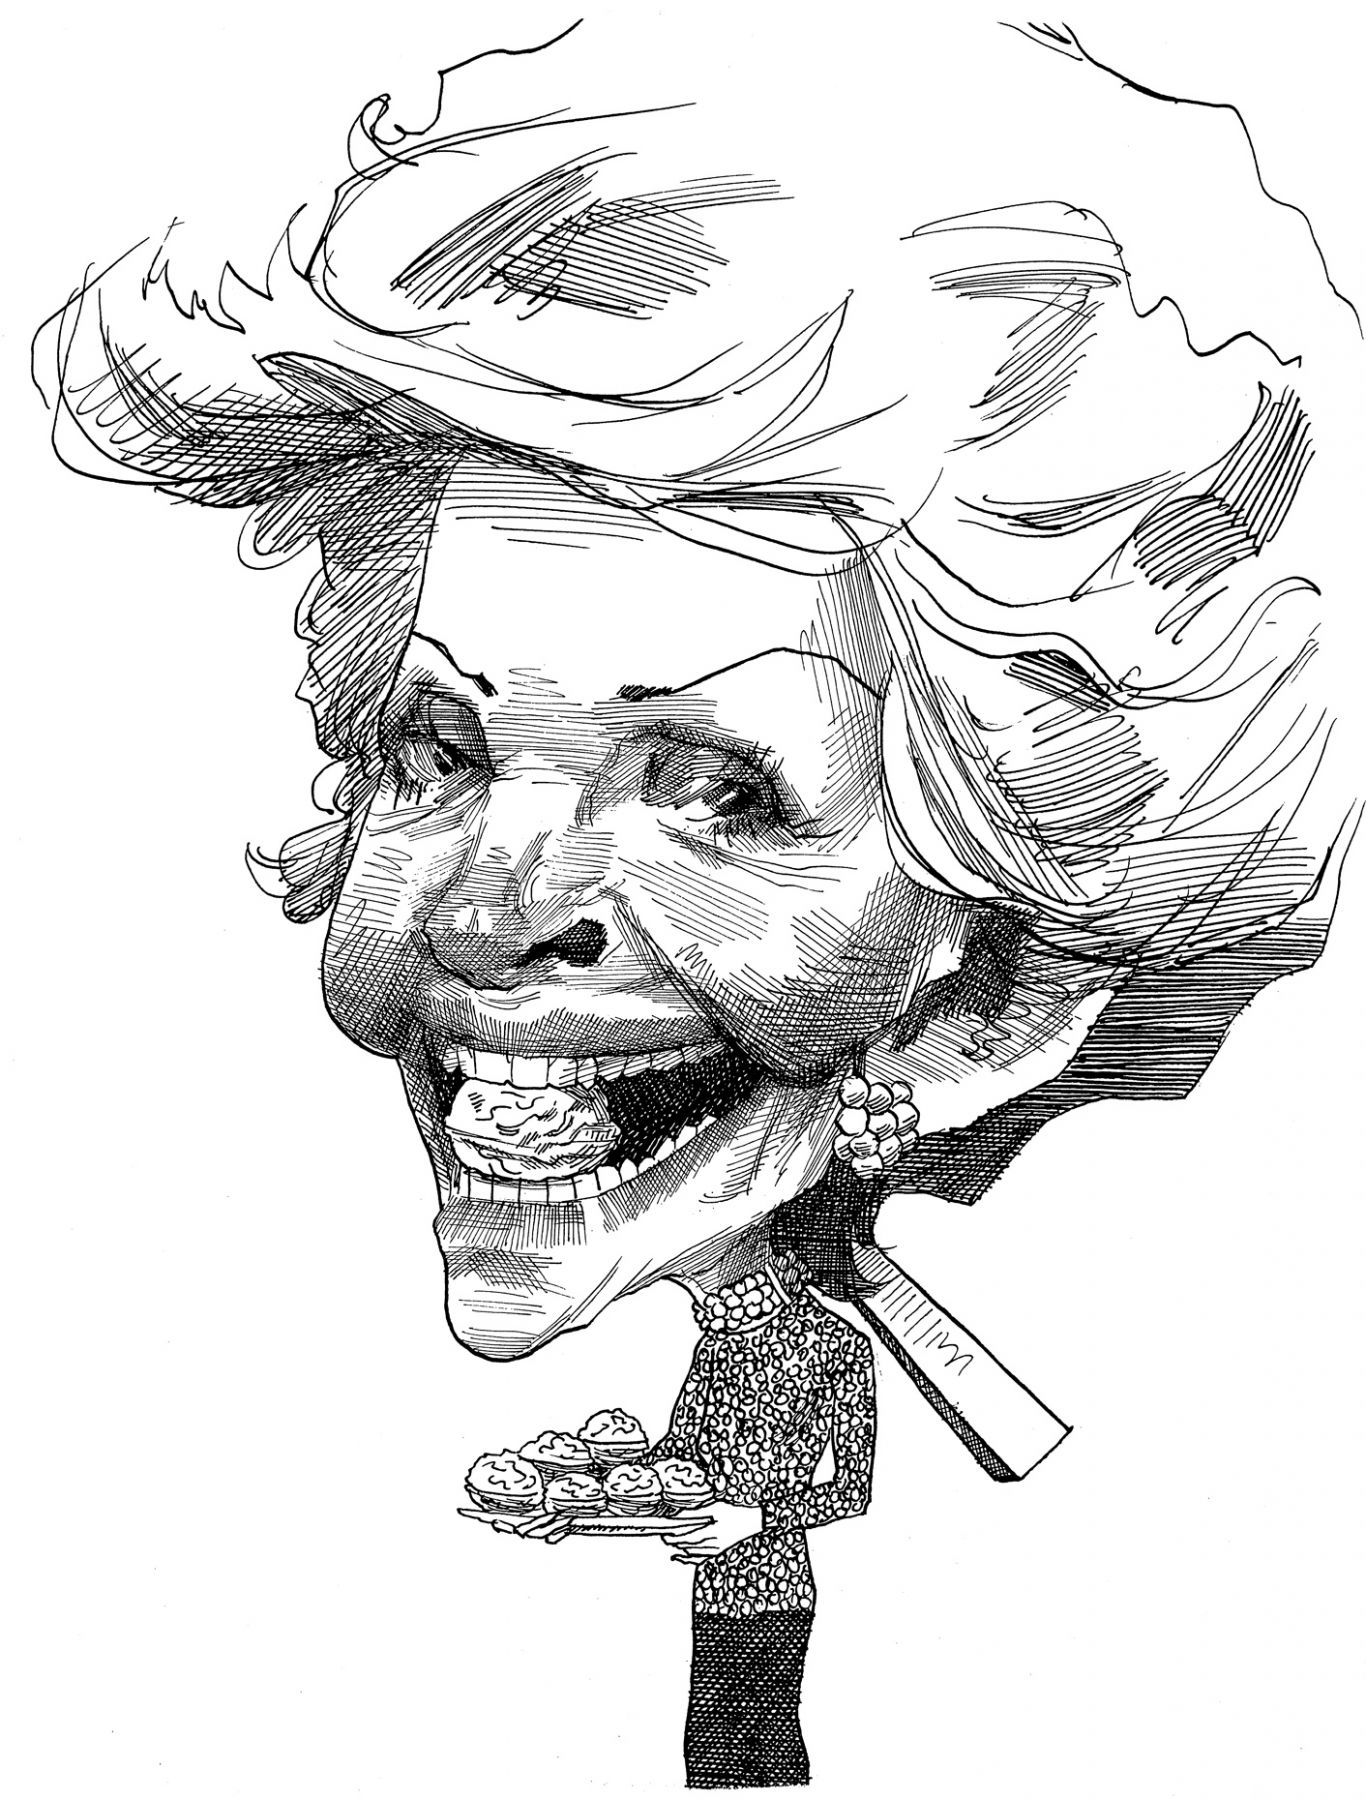 David Levine, Nancy Reagan- The Nut Cracker, 1989, ink on paper, 14 x 11 inches